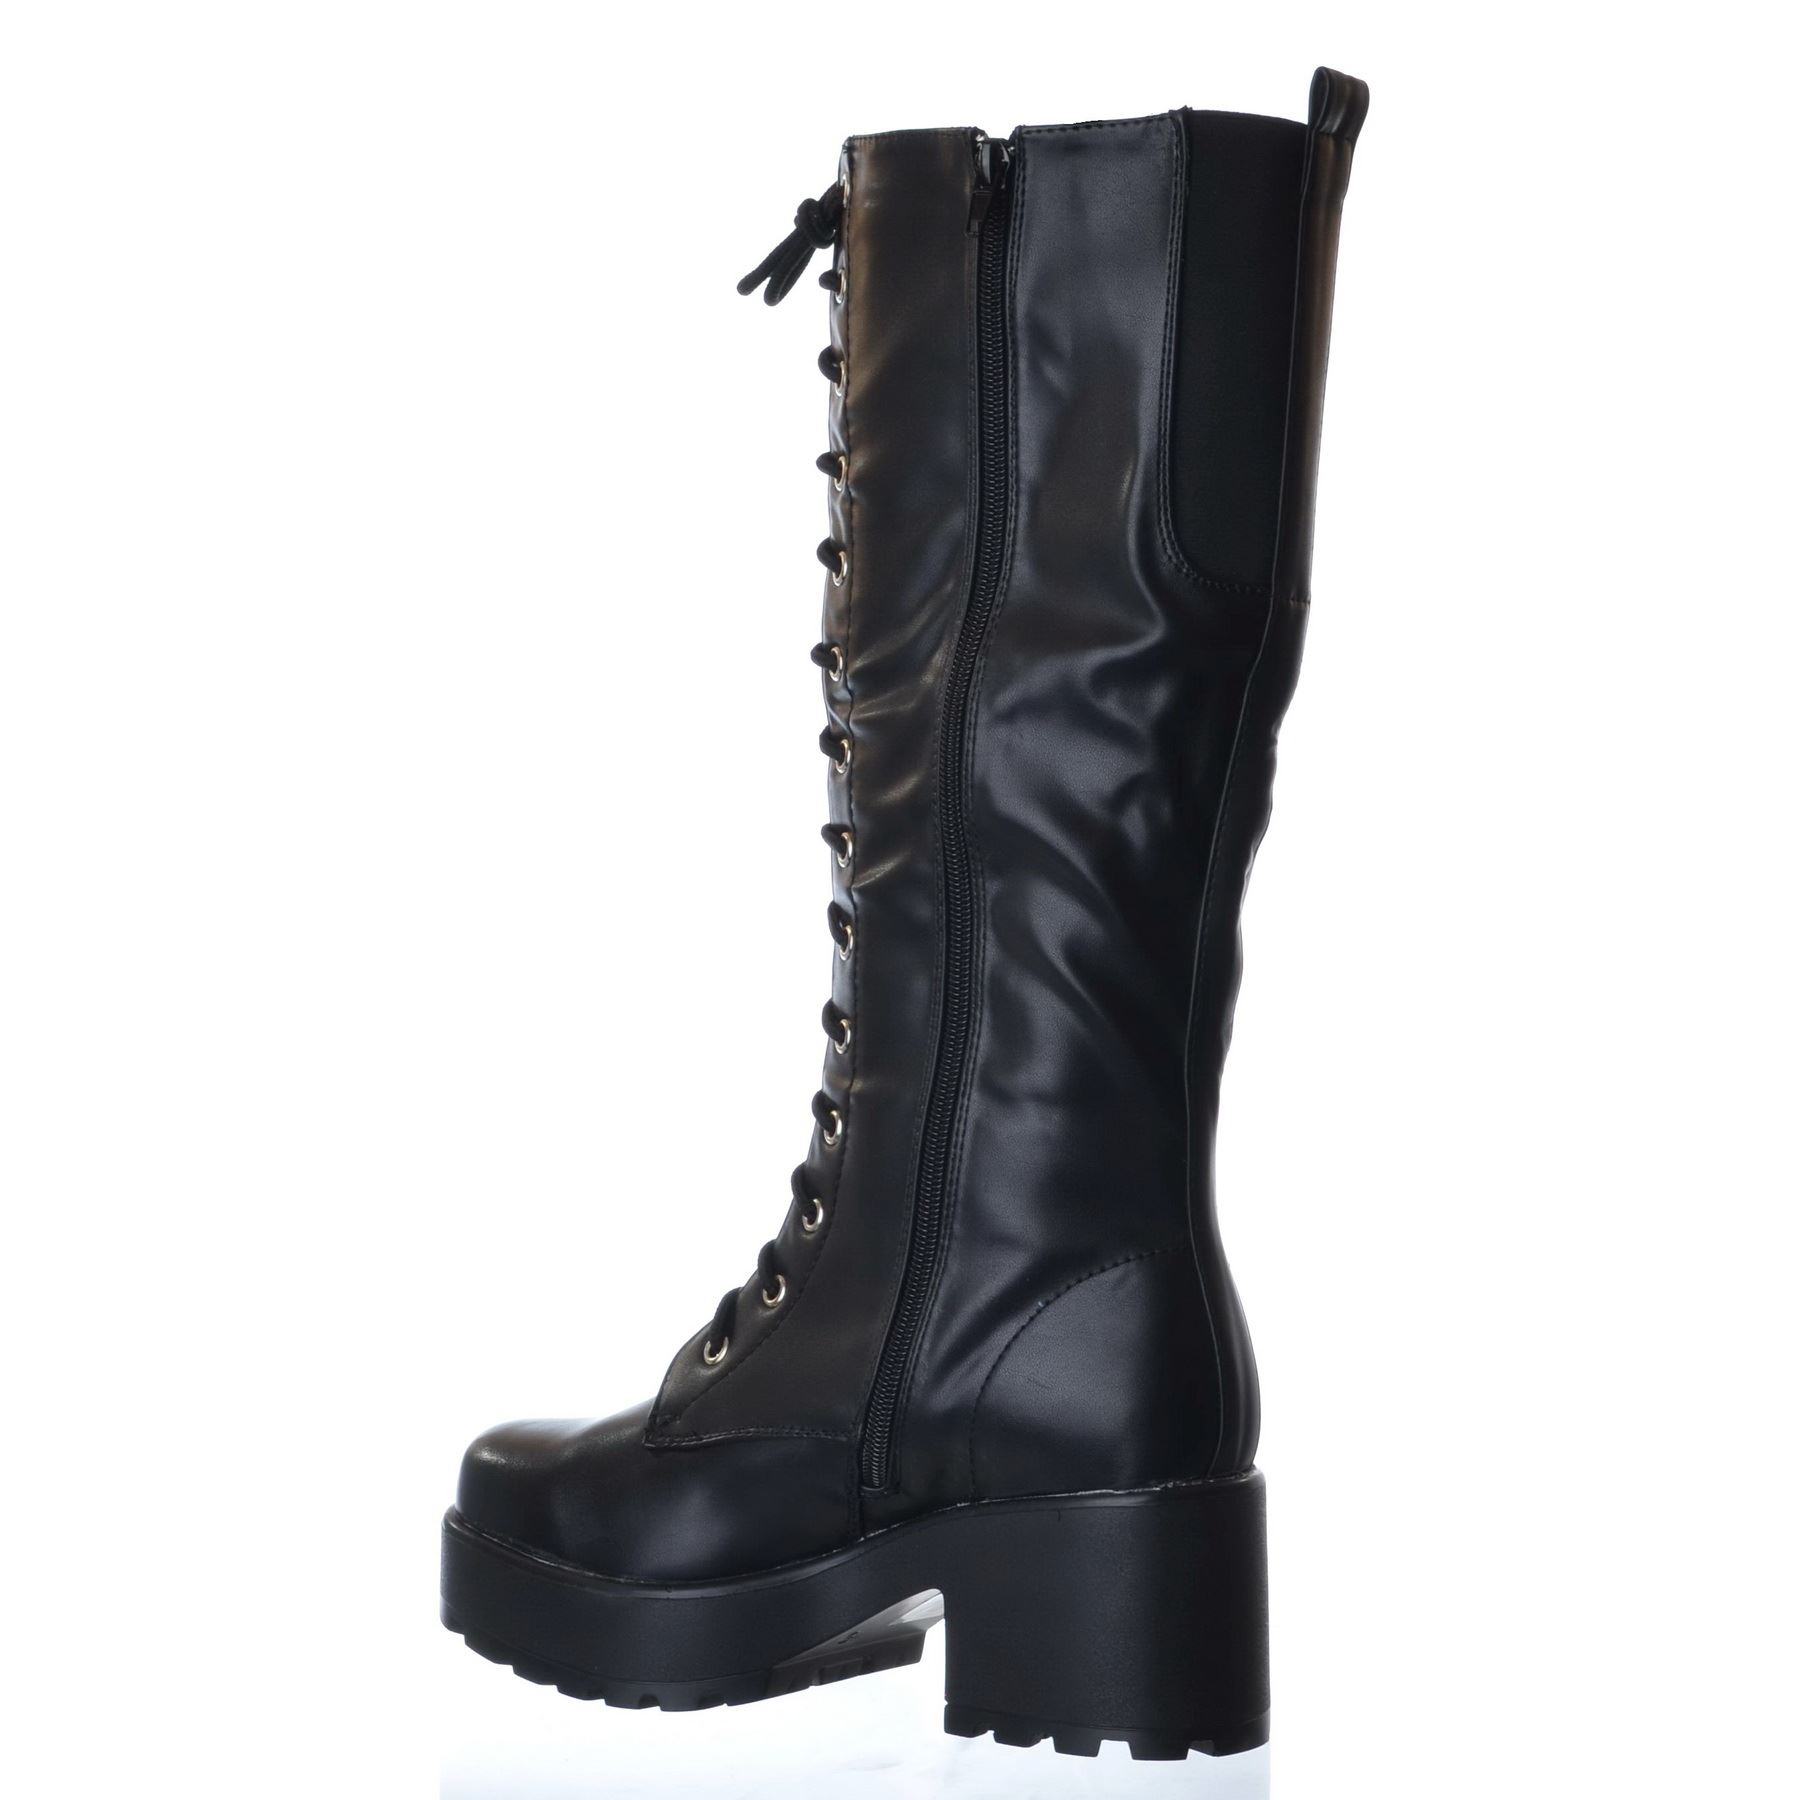 NEW-LADIES-WOMENS-KNEE-HIGH-CHUNKY-PLATFORM-MID-BLOCK-HEEL-LACE-UP-ZIP-UP-BOOTS thumbnail 4